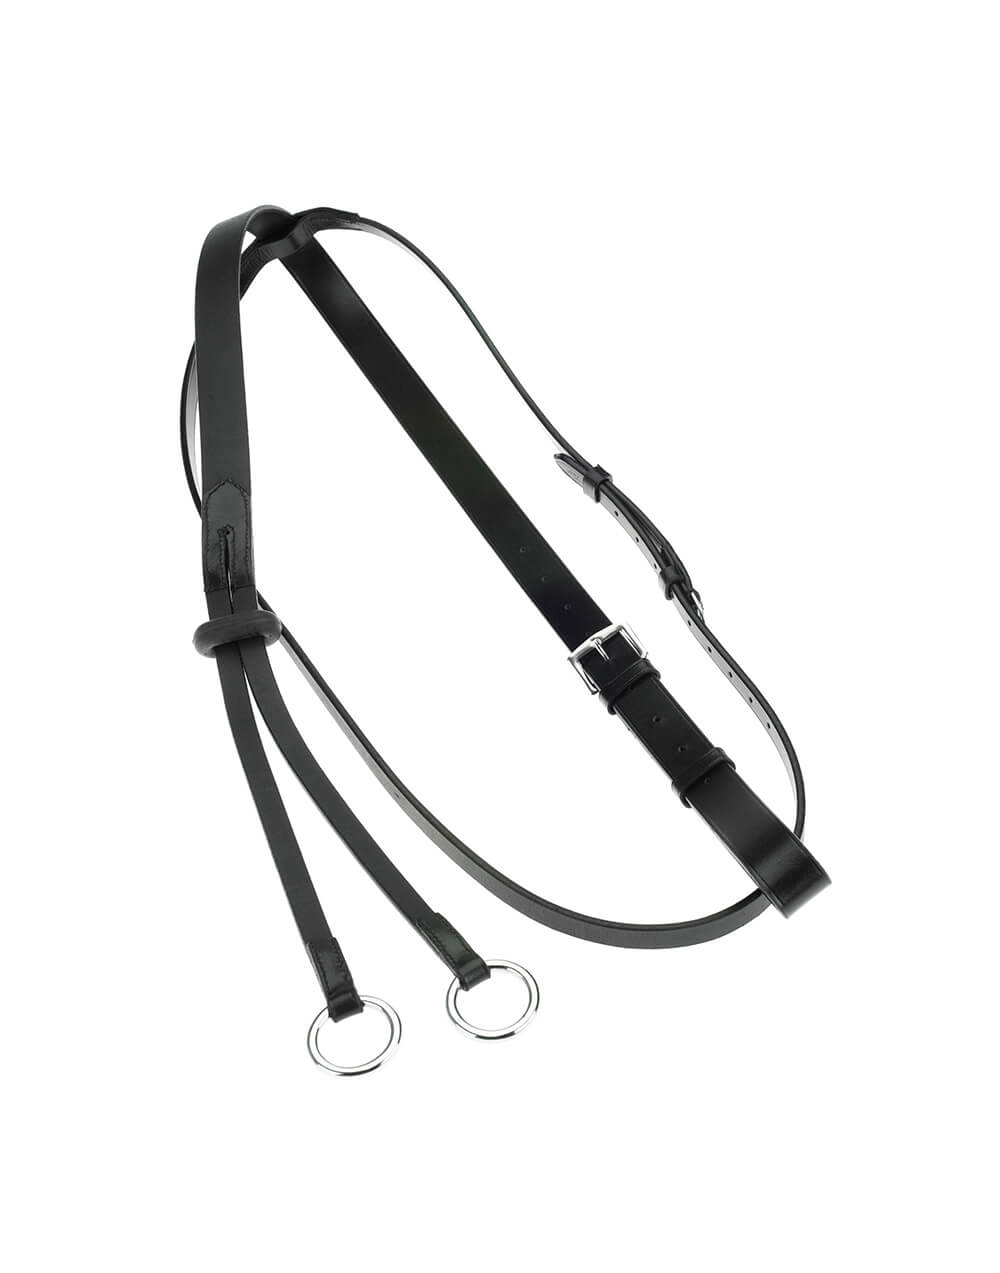 Leather running martingale with martingale rubber and adjustable straps for horse riding